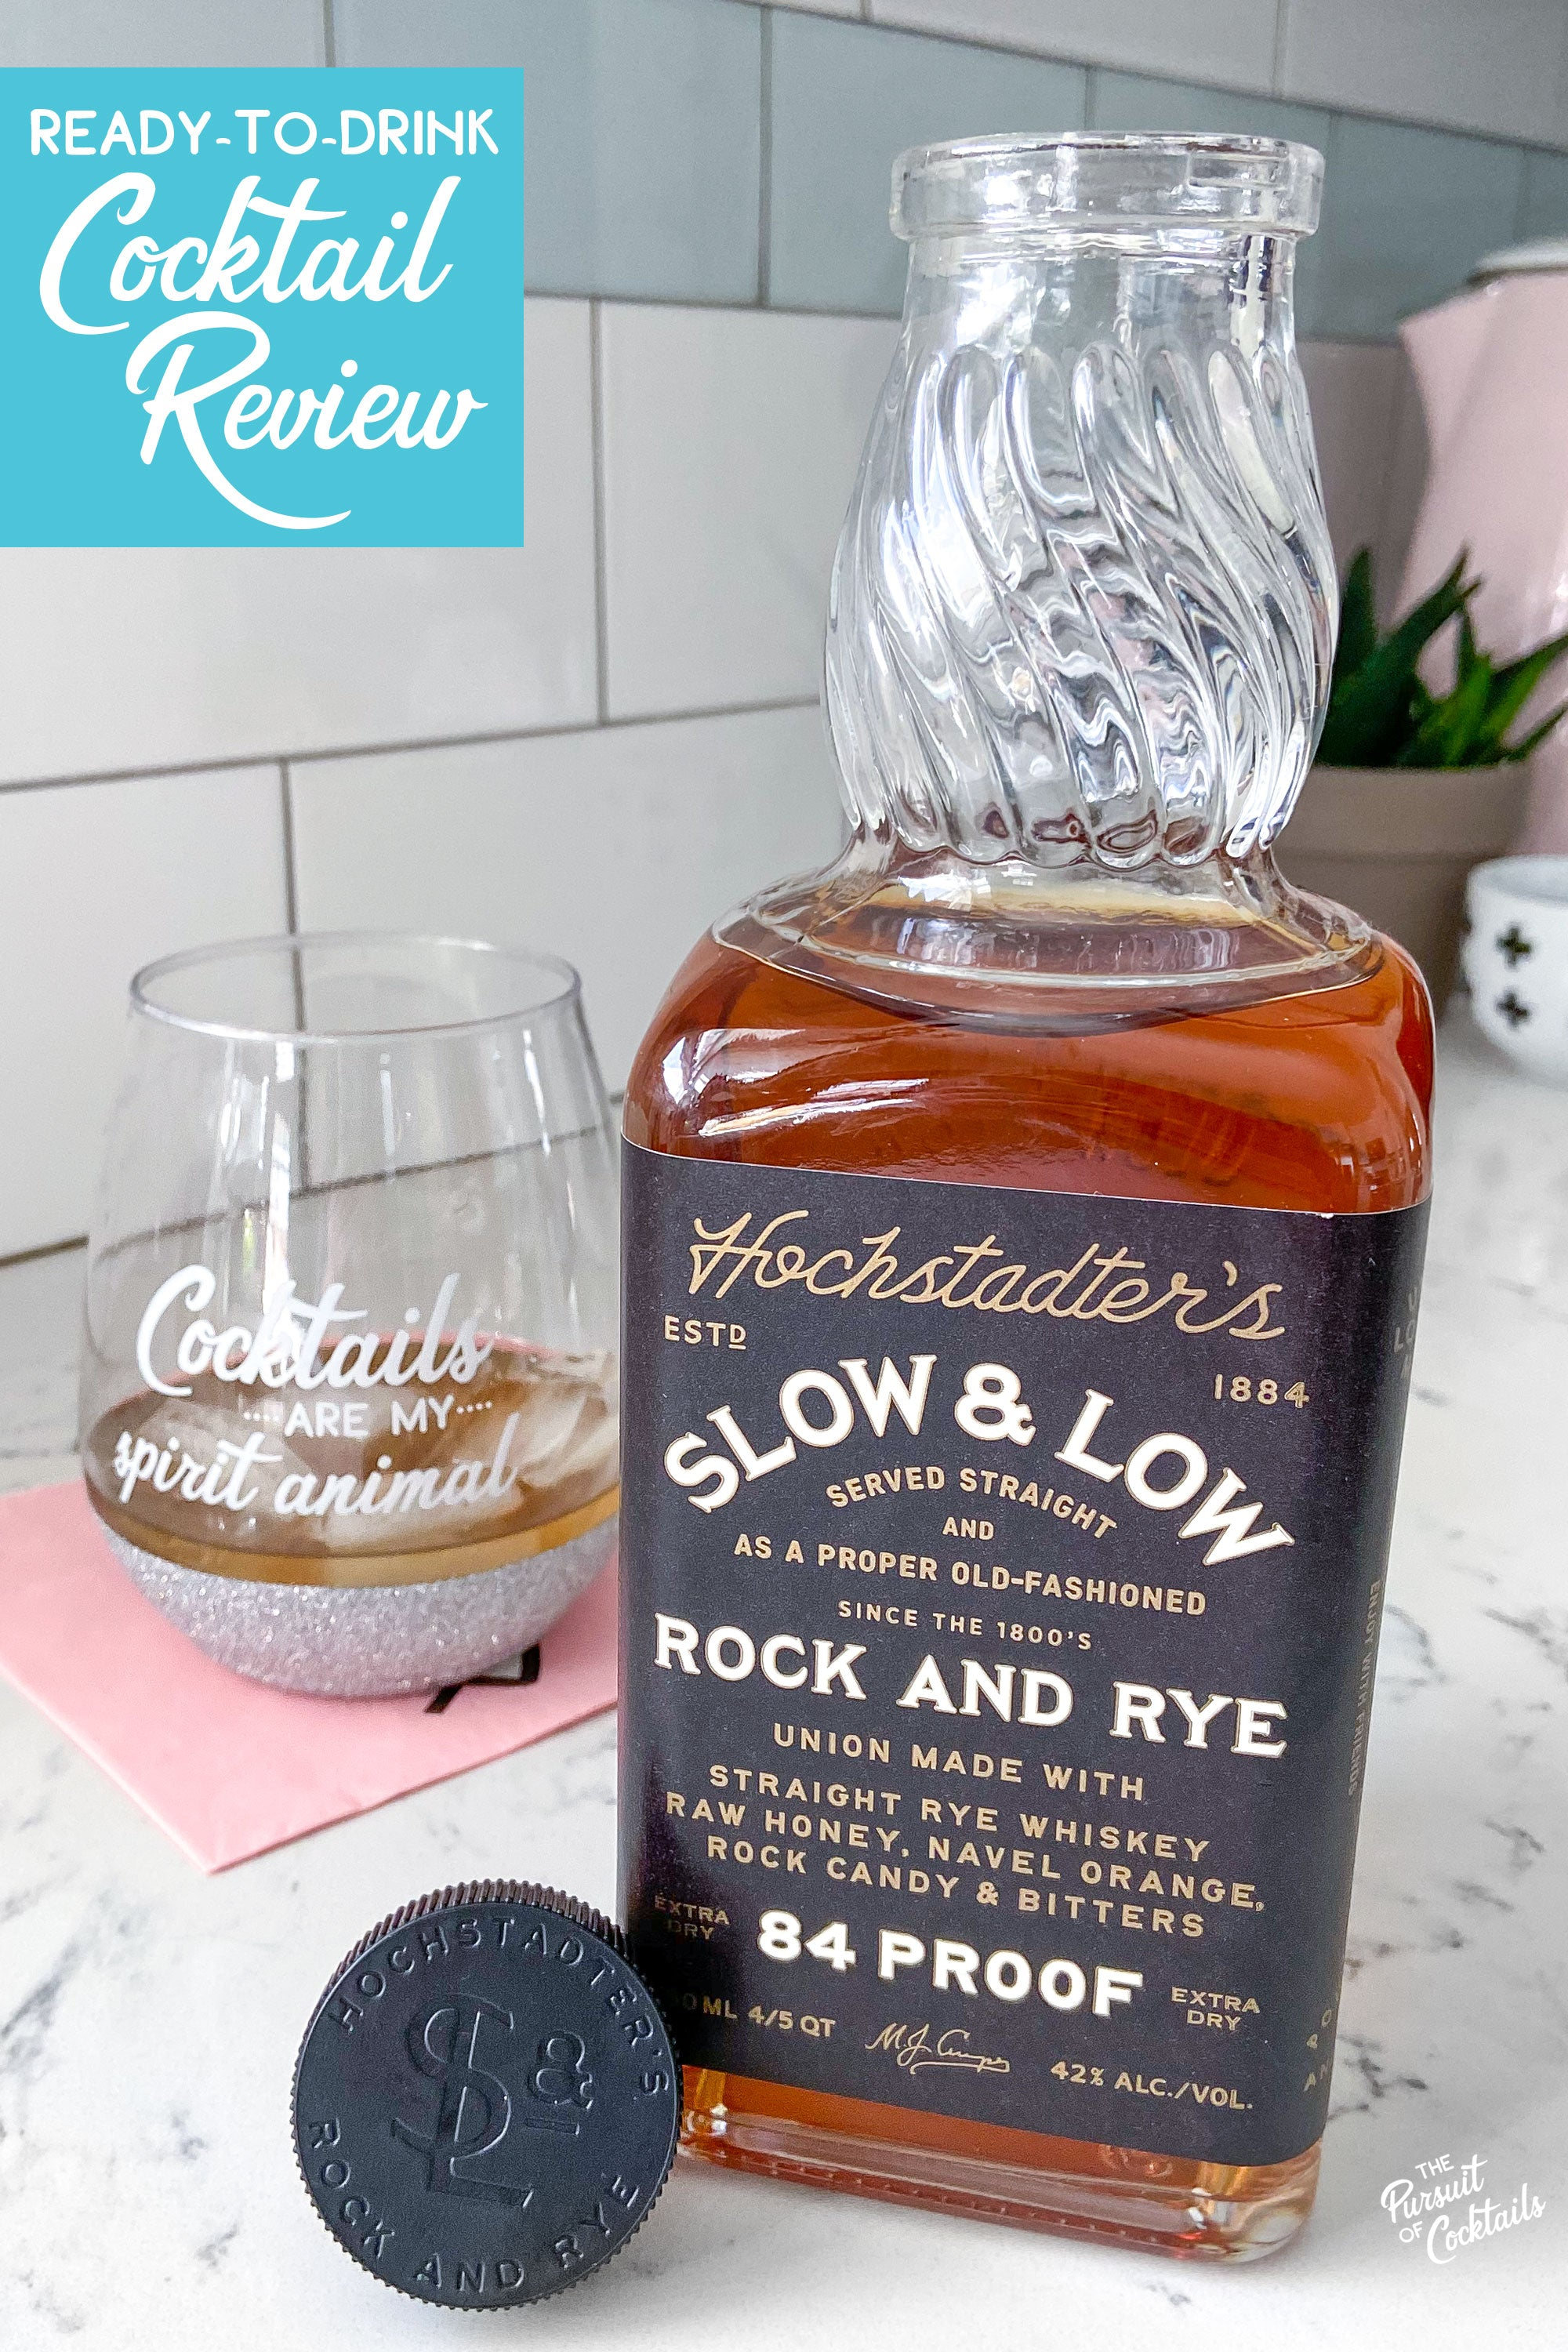 Slow and Low ready-to-drink Old Fashioned cocktail review by The Pursuit of Cocktails